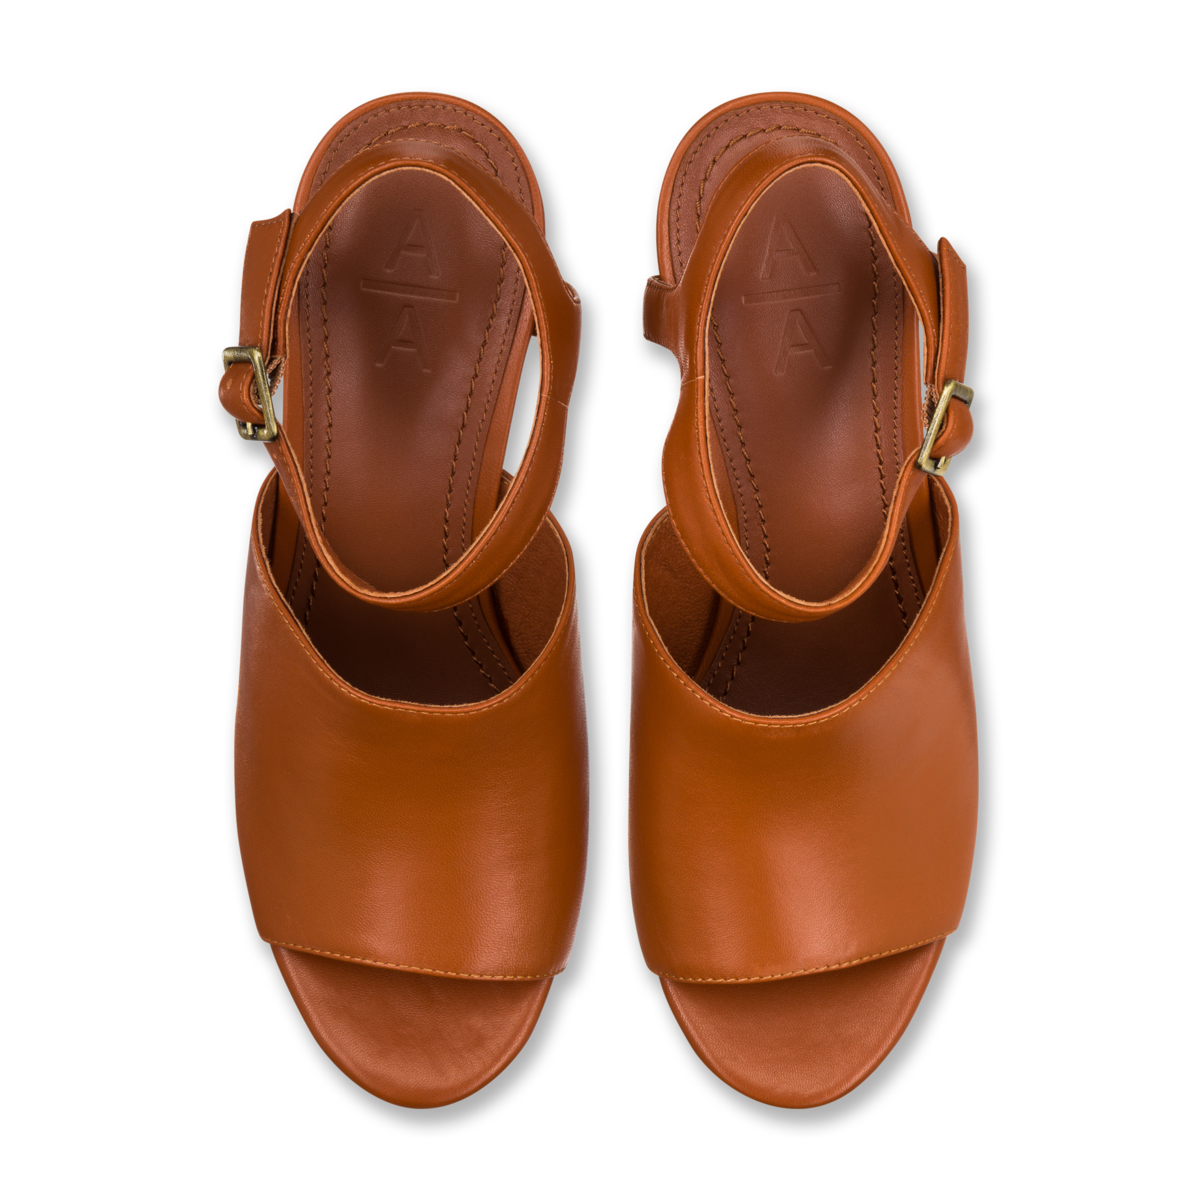 Footwear product photo